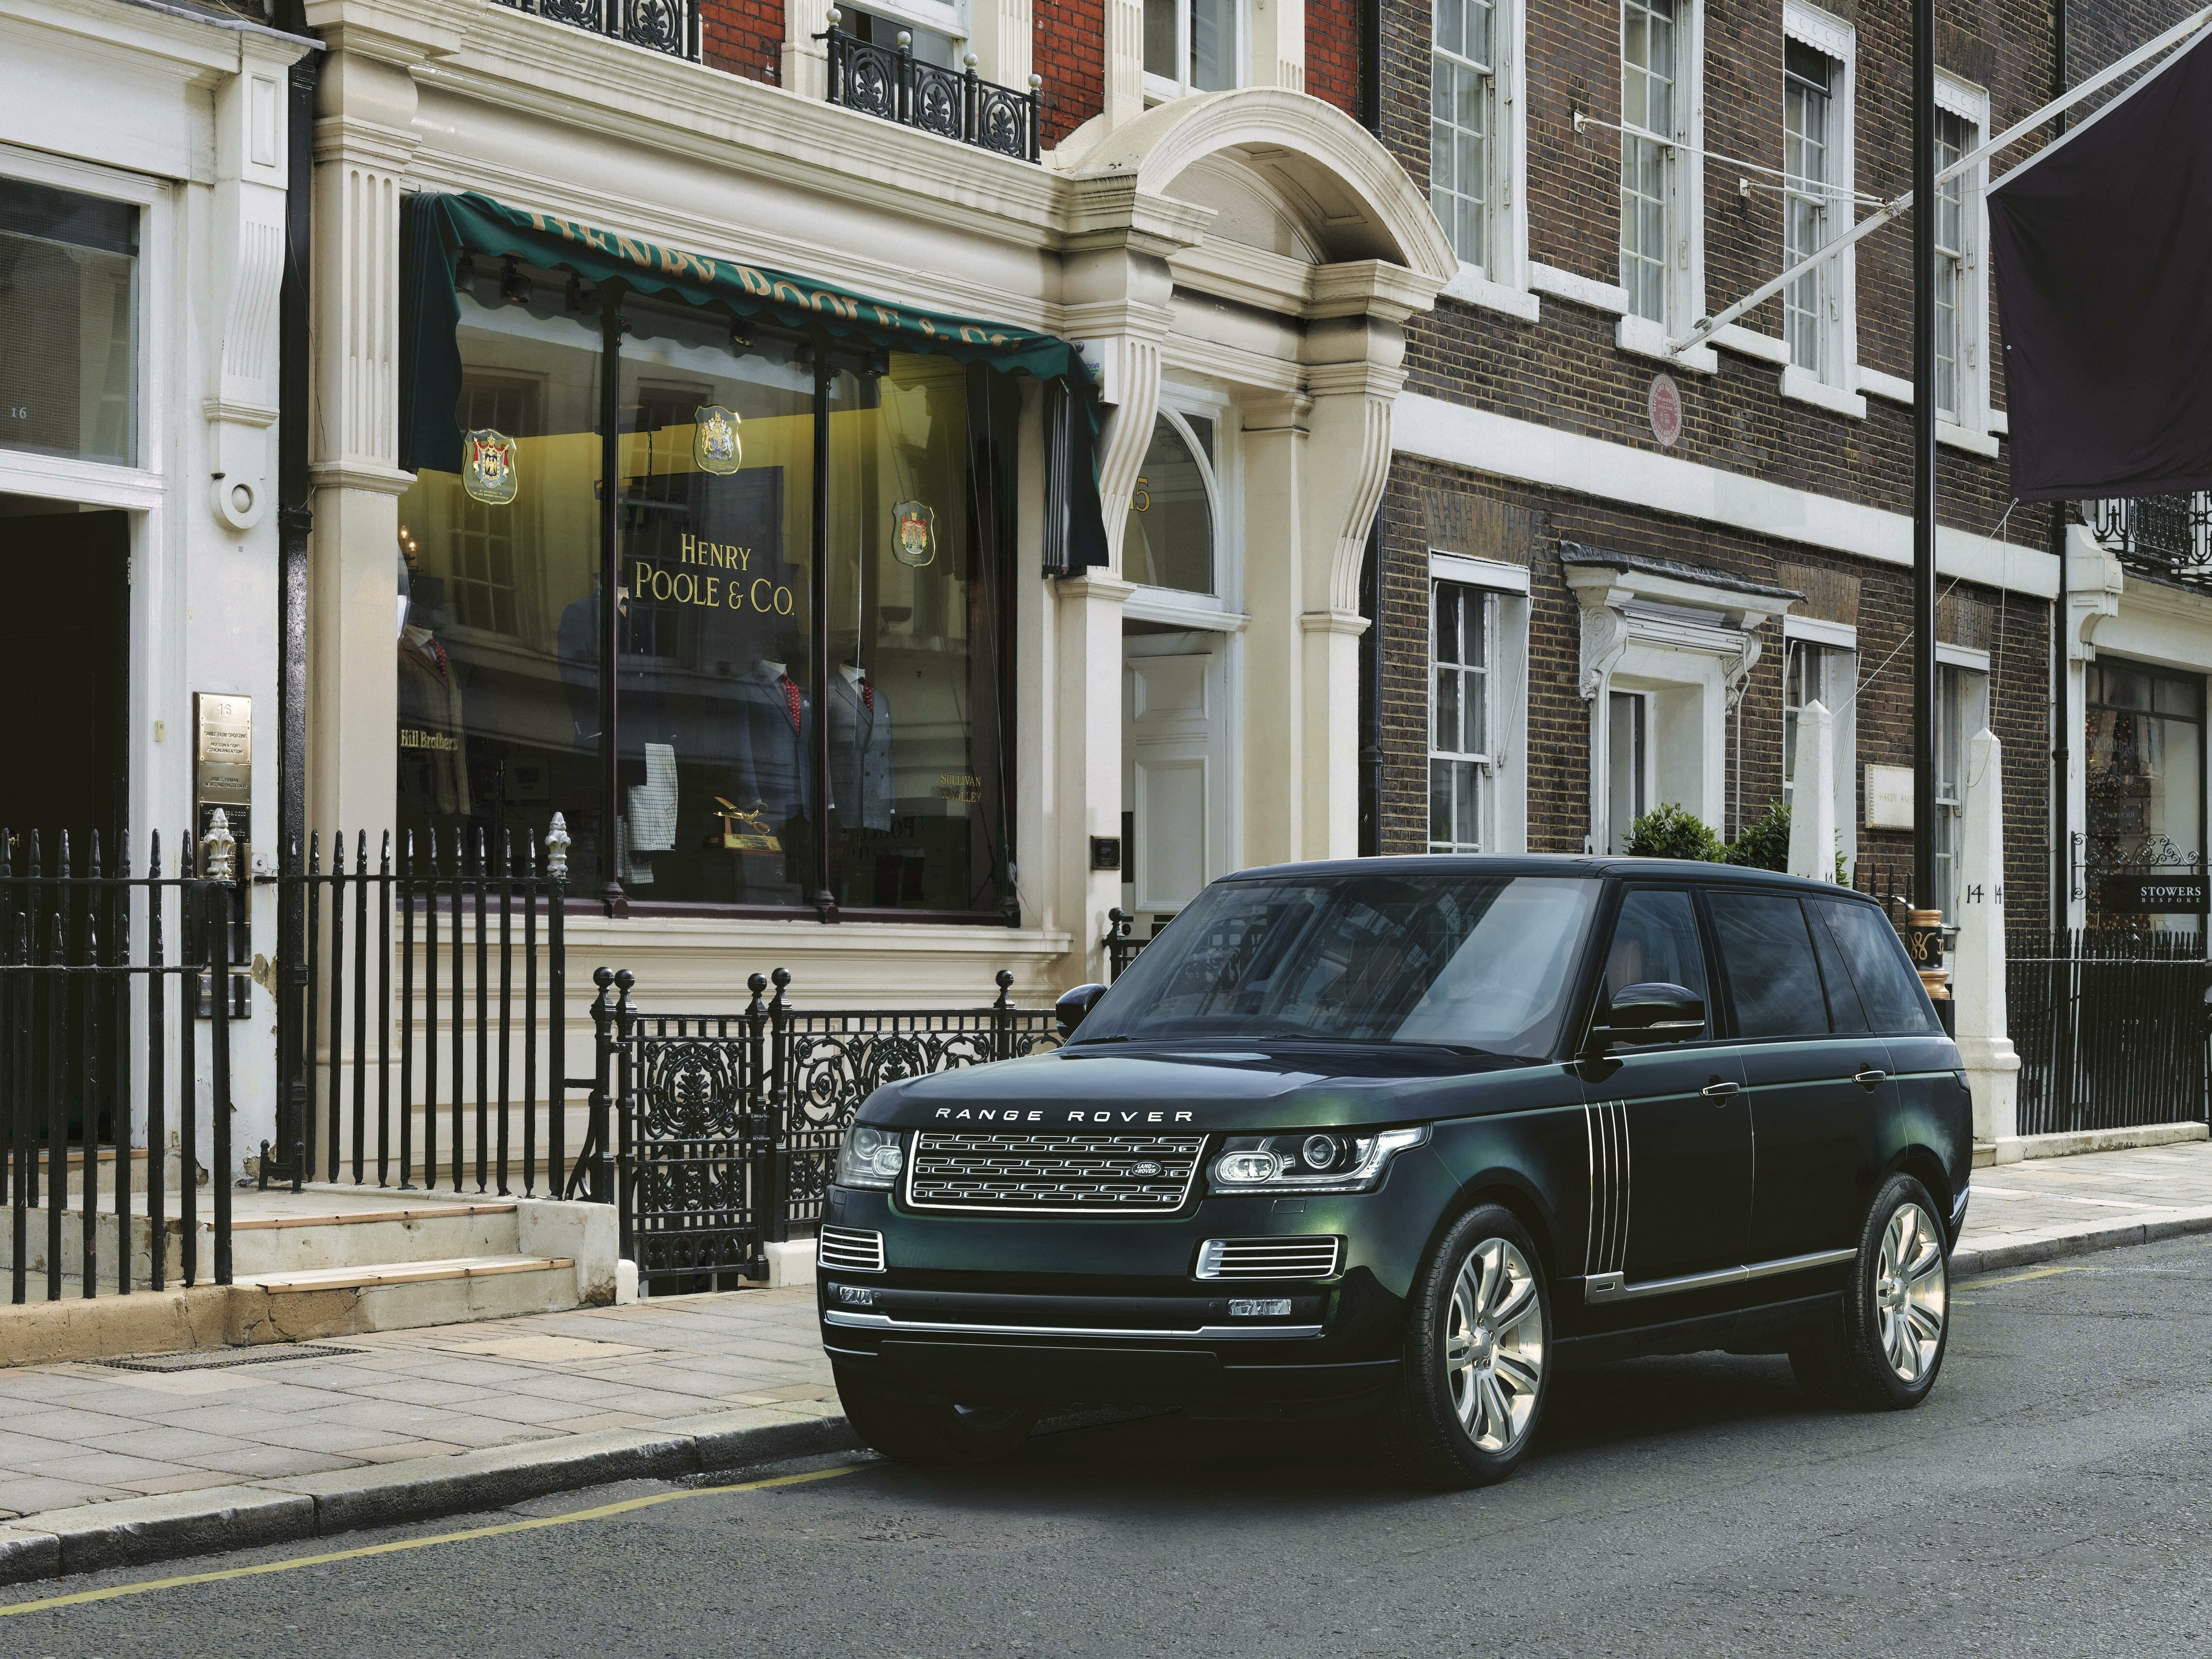 Holland and Holland Range Rover exterior